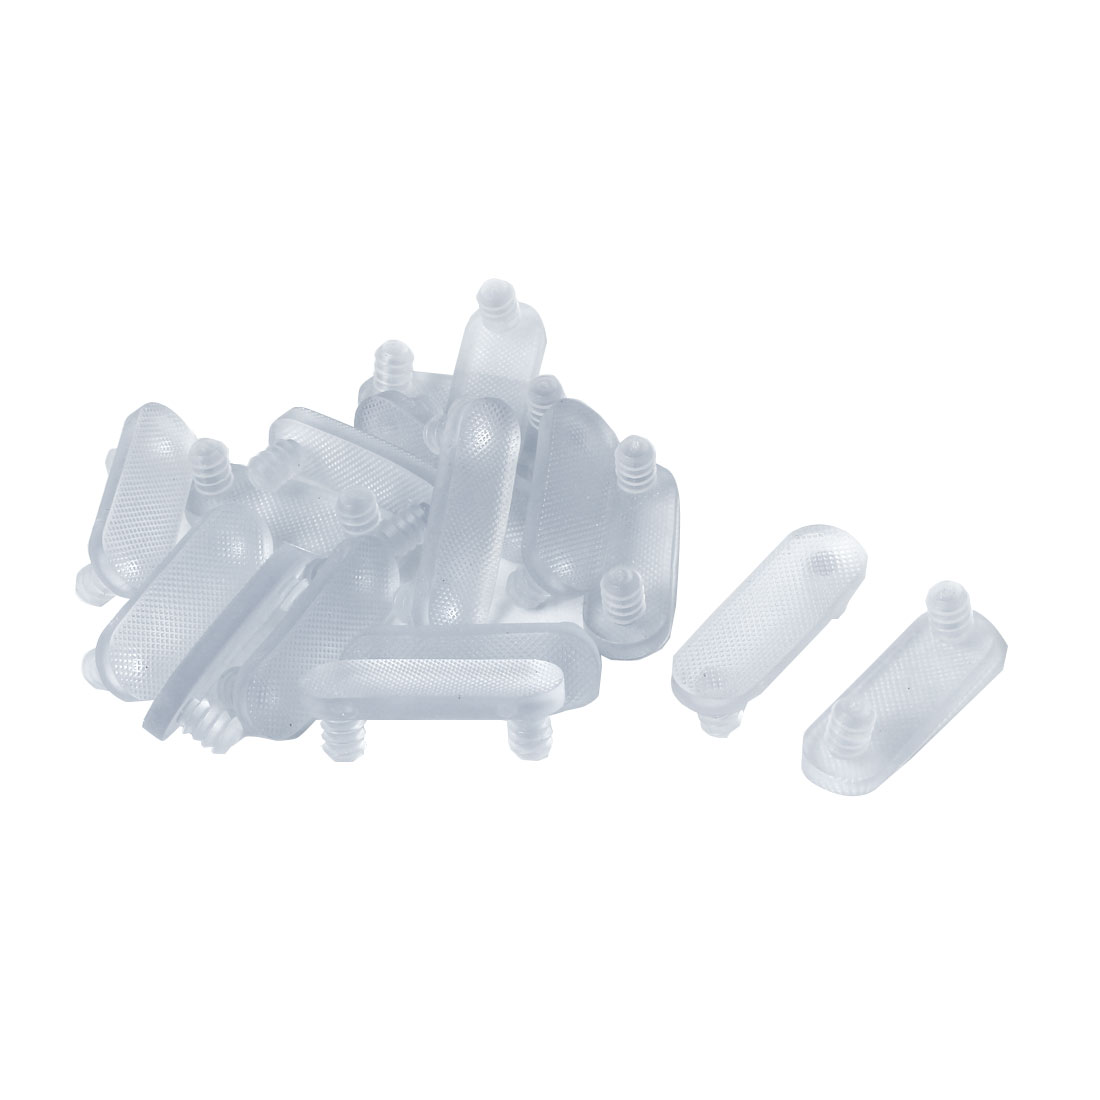 7mm x 10mm Screw in Type Rubber Furniture Protection Cushions Clear 16 Pcs